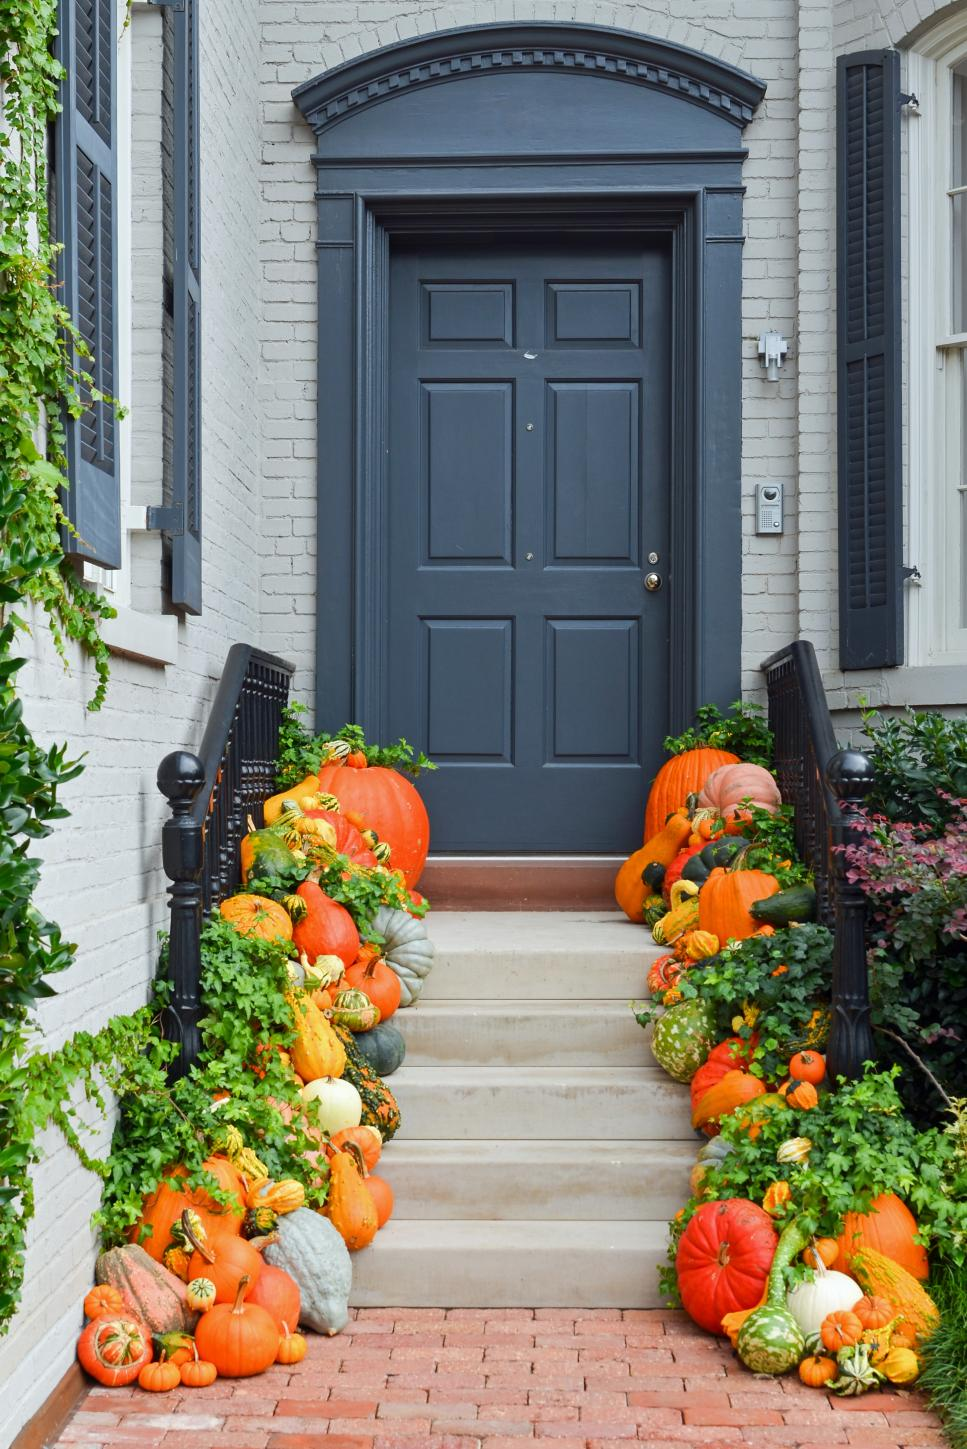 10 Easy Essentials For Outdoor Fall Decorating Diy